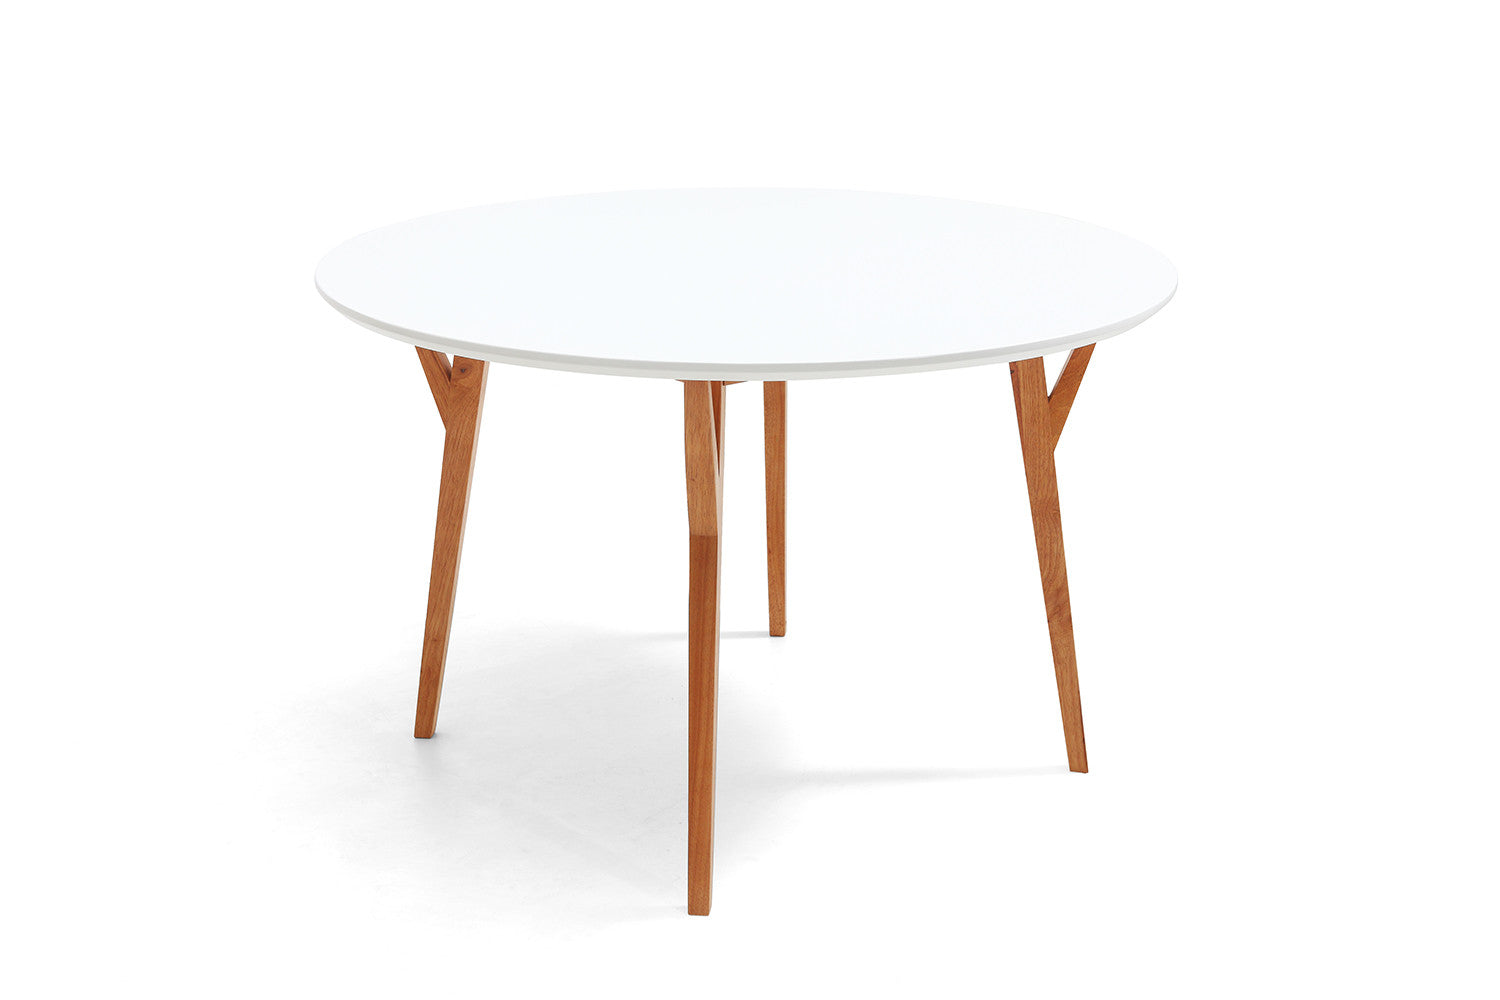 Table de salle manger ronde design scandinave moesa for Renovation table salle a manger